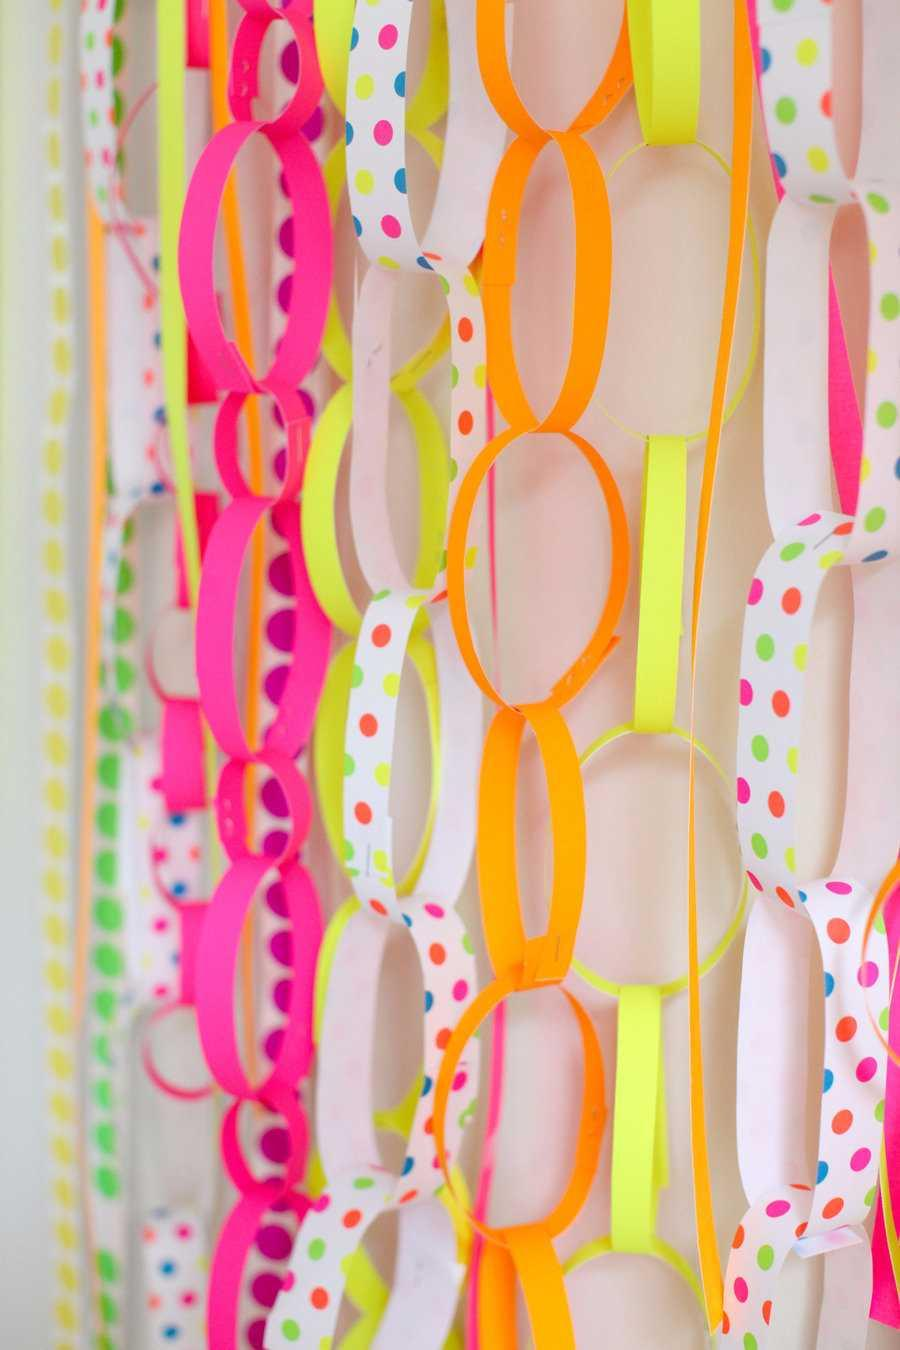 Festa Neon: 60 decorating ideas and theme photos 19